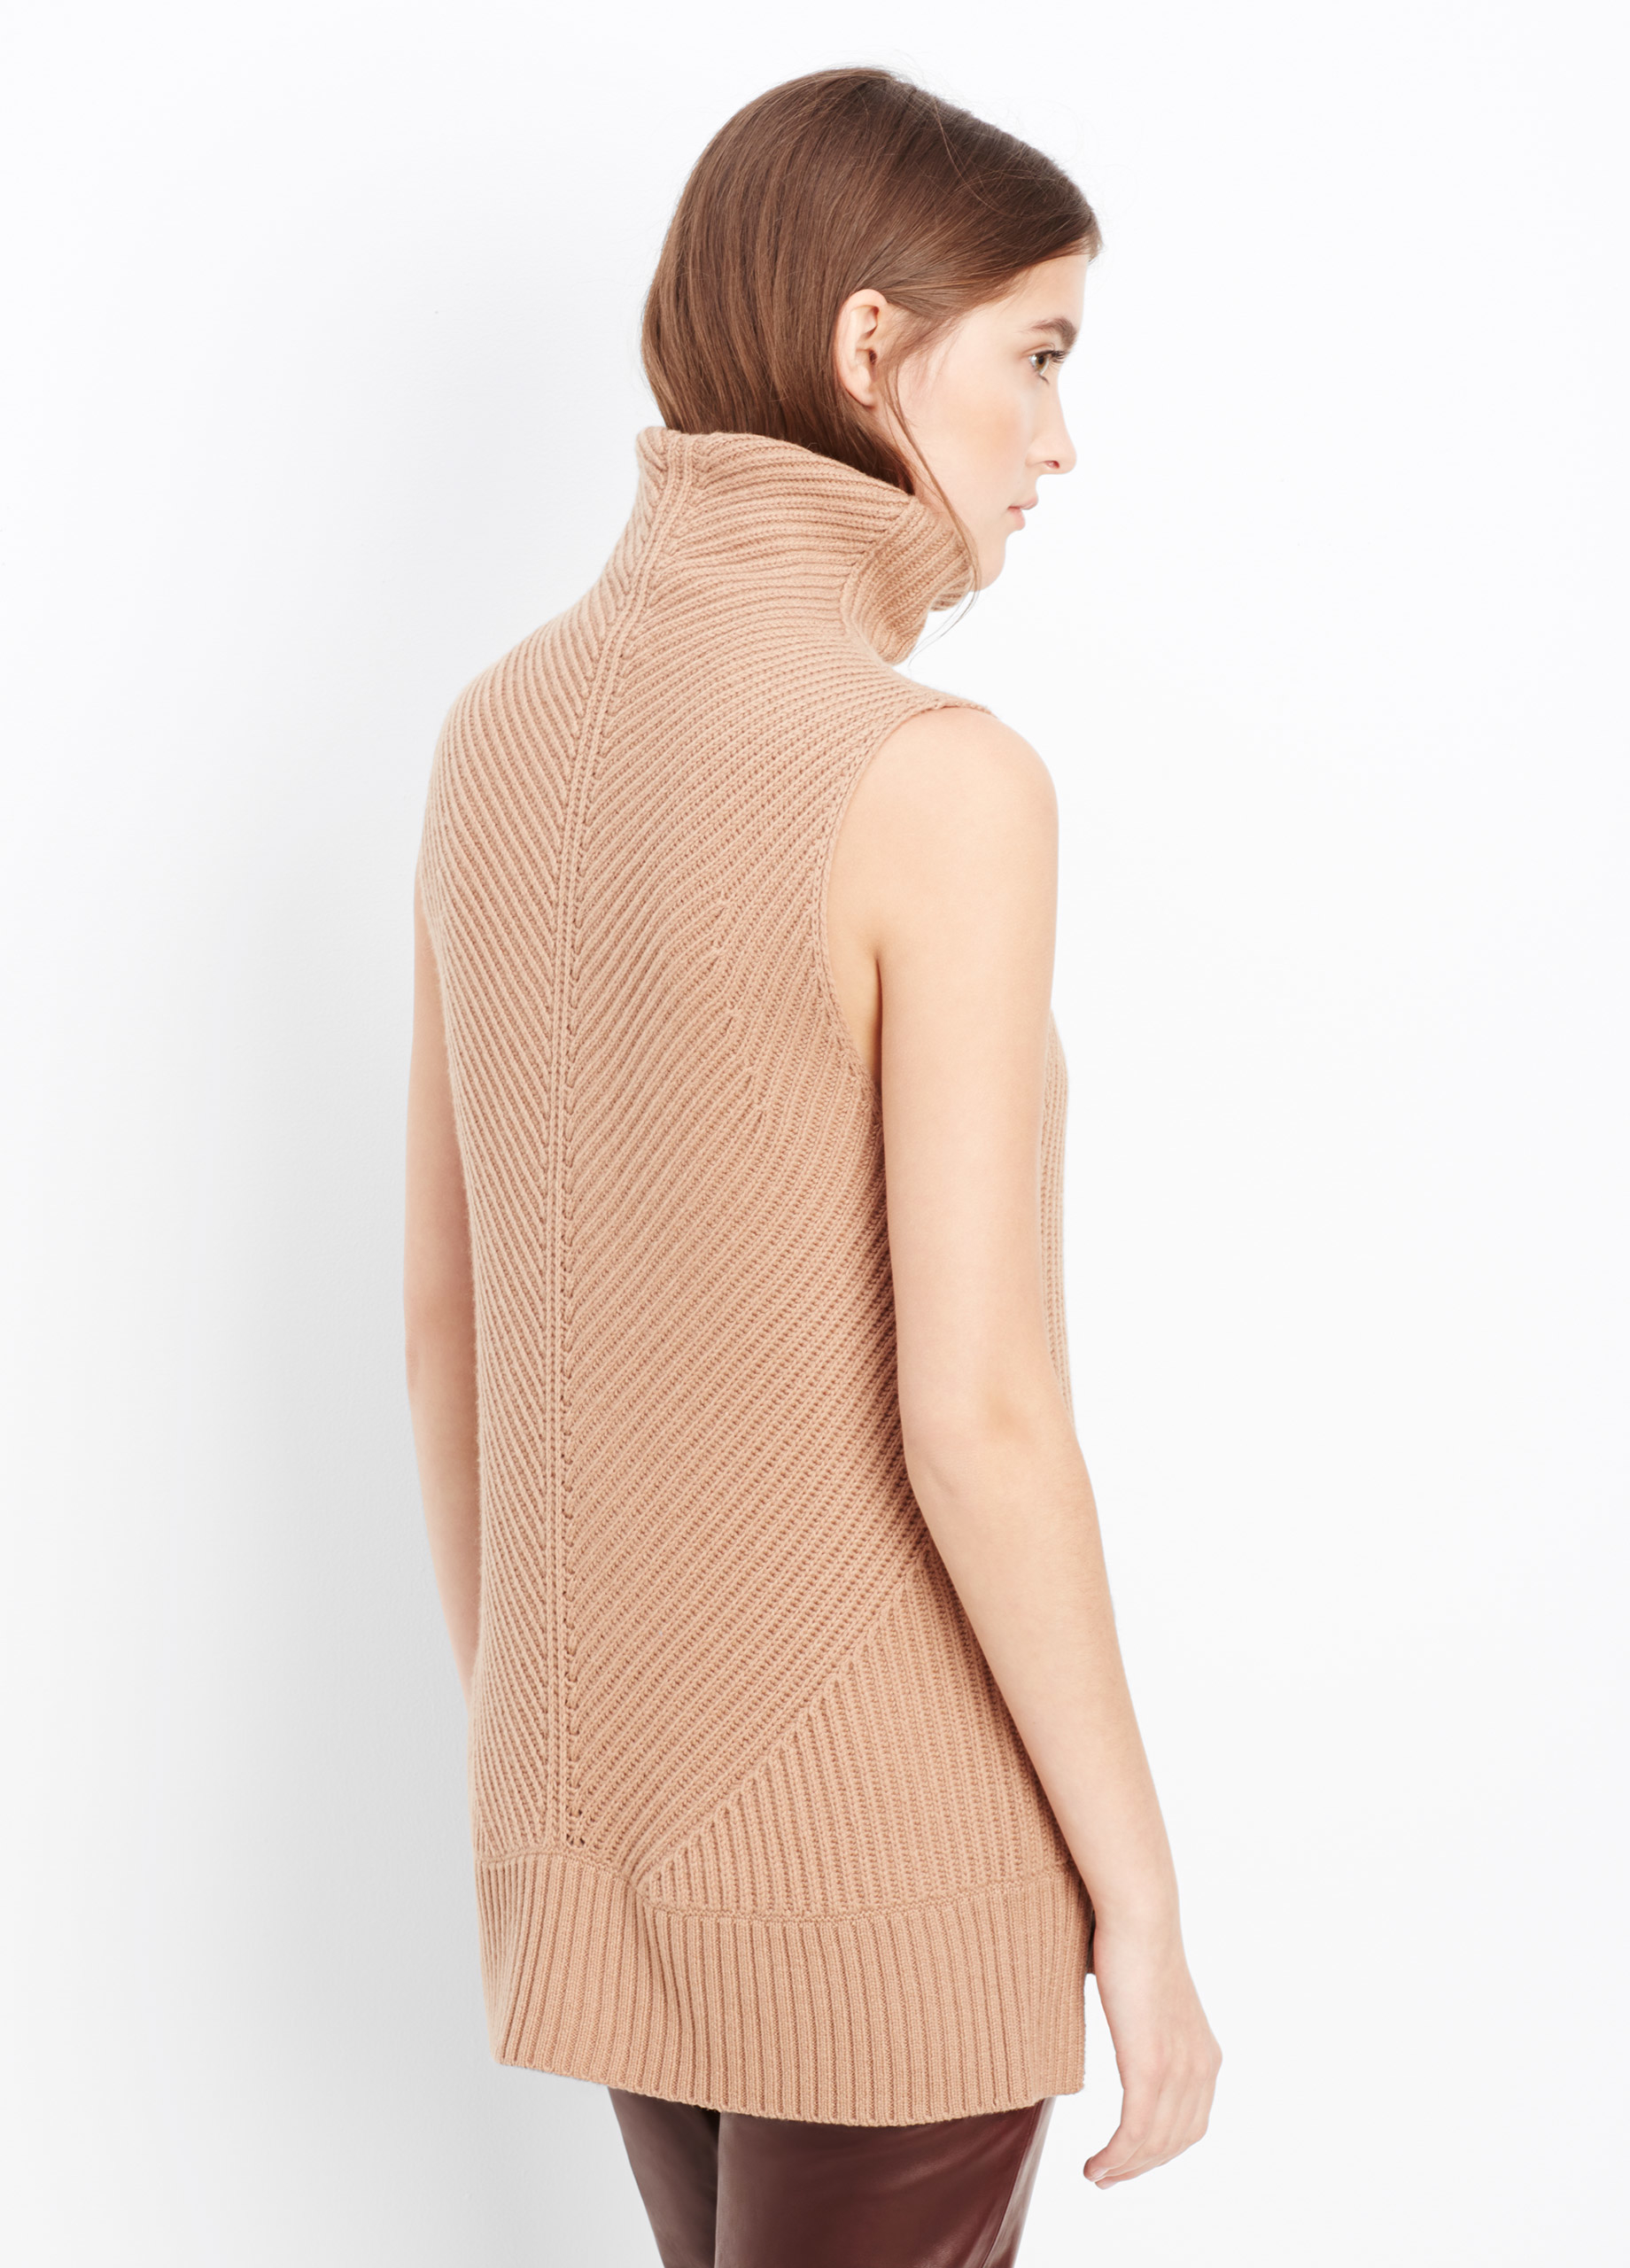 Vince Directional Rib Sleeveless Turtleneck Sweater in Brown | Lyst